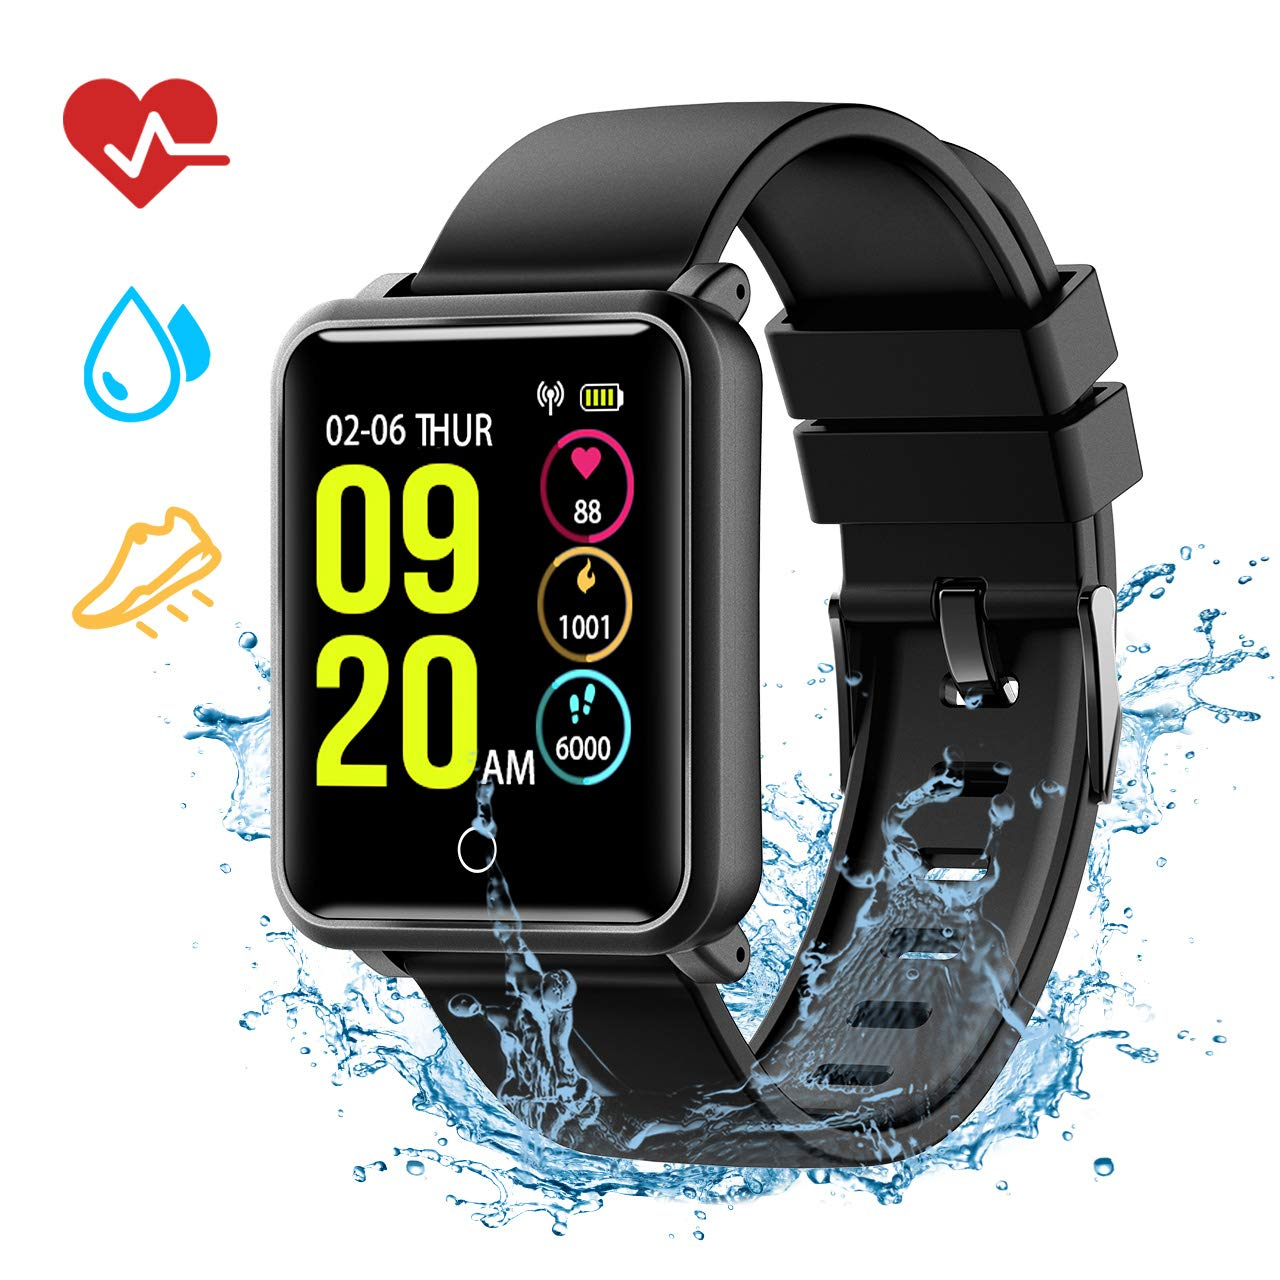 Amazon.com: Bluetooth Smart Watch for Android, TopElek IP68 ...